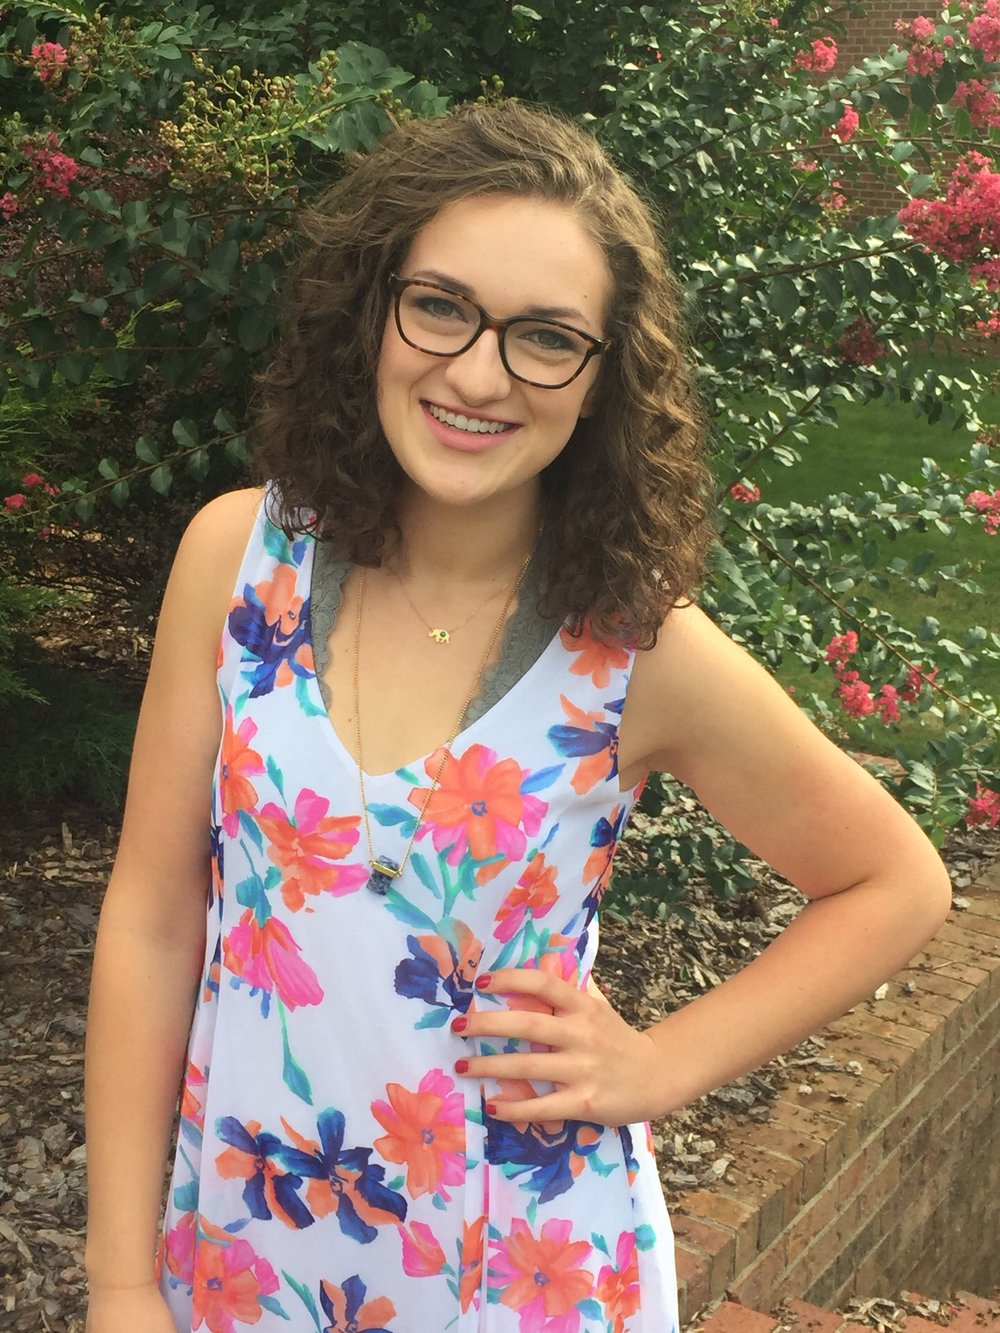 Leah Hinshaw is a sophomore from Winston-Salem, N.C. majoring in Linguistics and Latin and minoring in Composition, Rhetoric, and Digital Literacy. Contact her at leahgray@live.unc.edu to learn more about the Superhero Project.